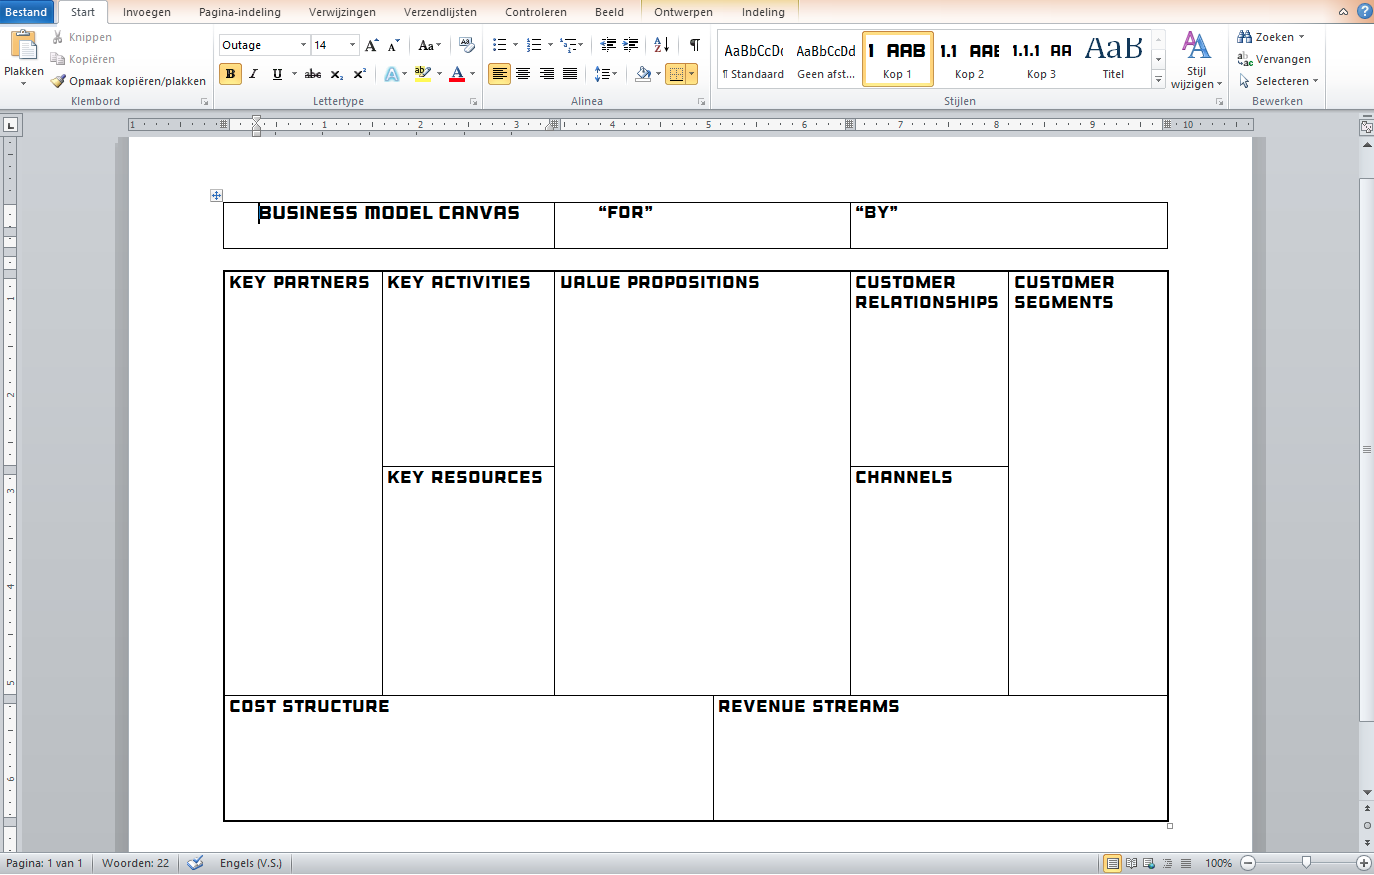 Business model canvas template businessmodelcanvastemplateg friedricerecipe Choice Image